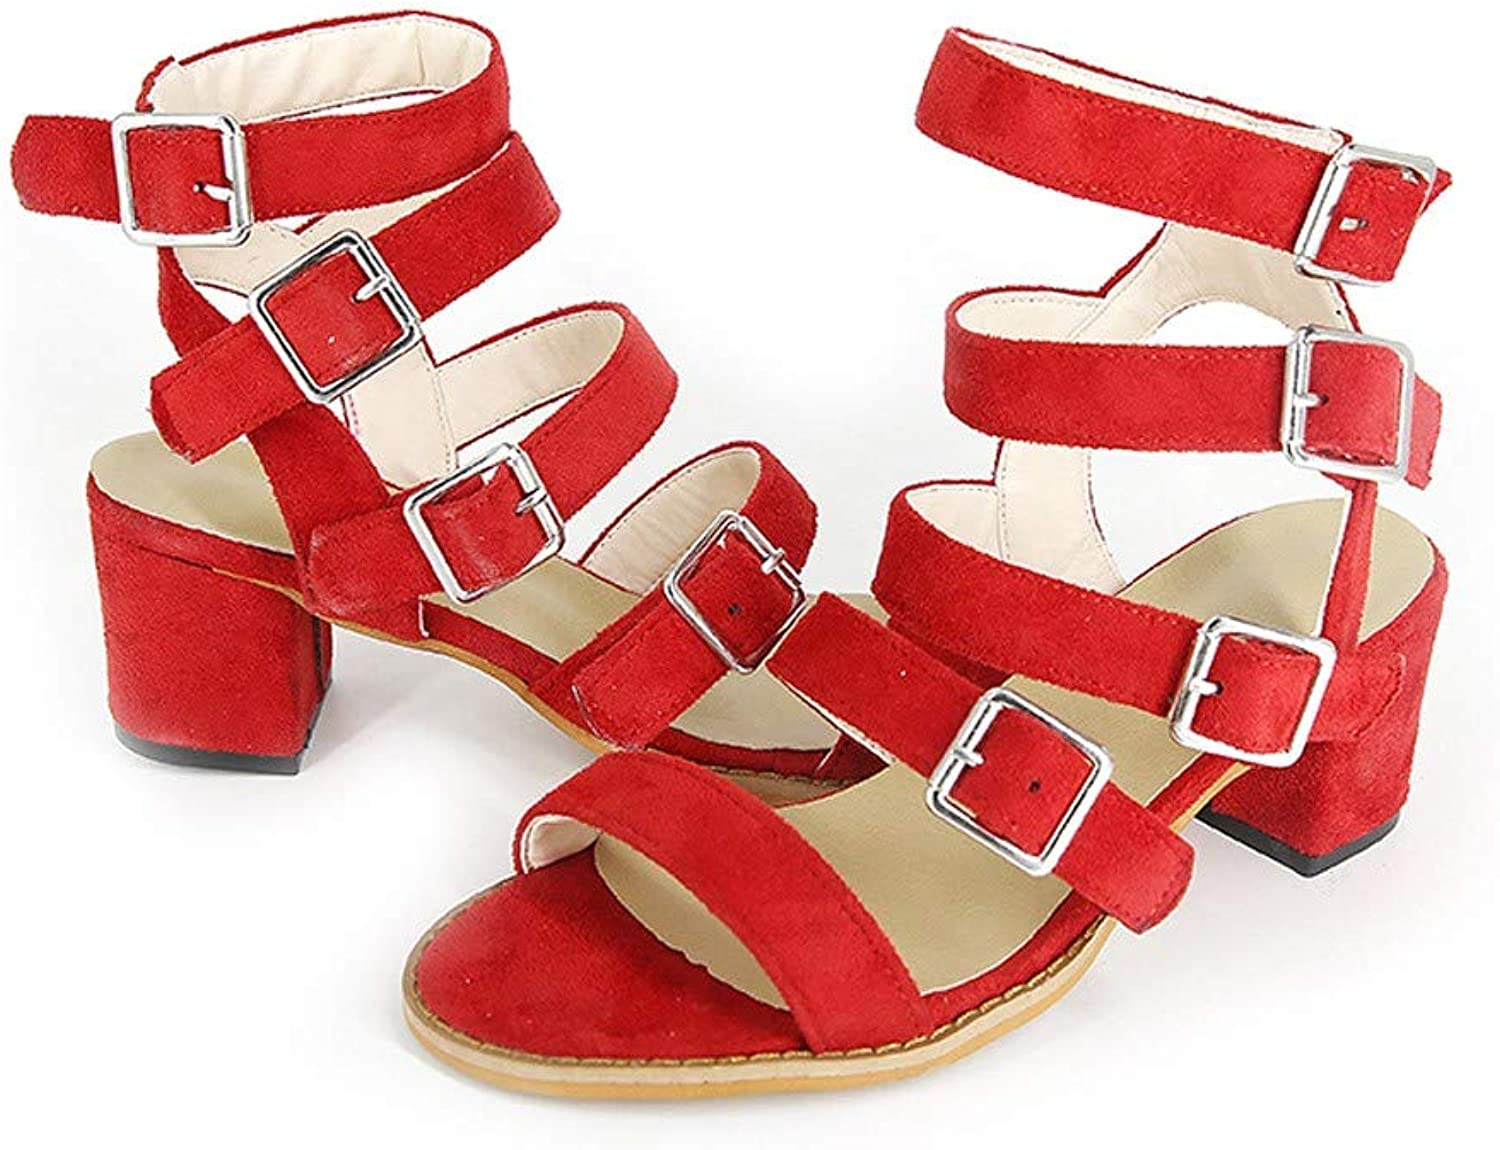 WM & MW Summer Womens shoes Flock Buckle Strap Sandals Open Toe Casual Party shoes Square Heel Sandals